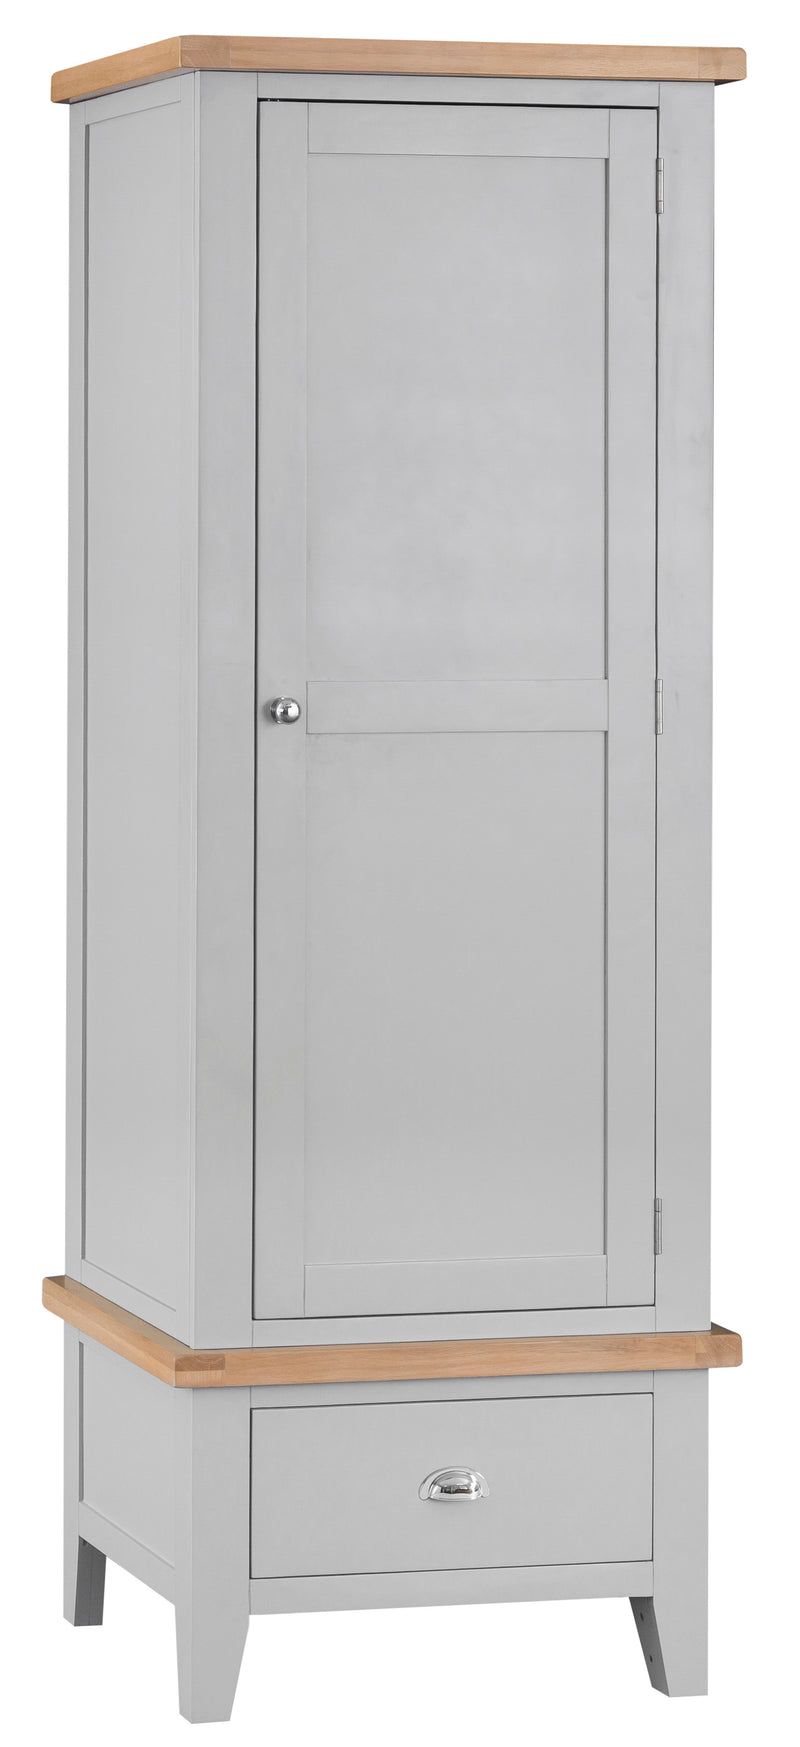 Titchfield Single Wardrobe